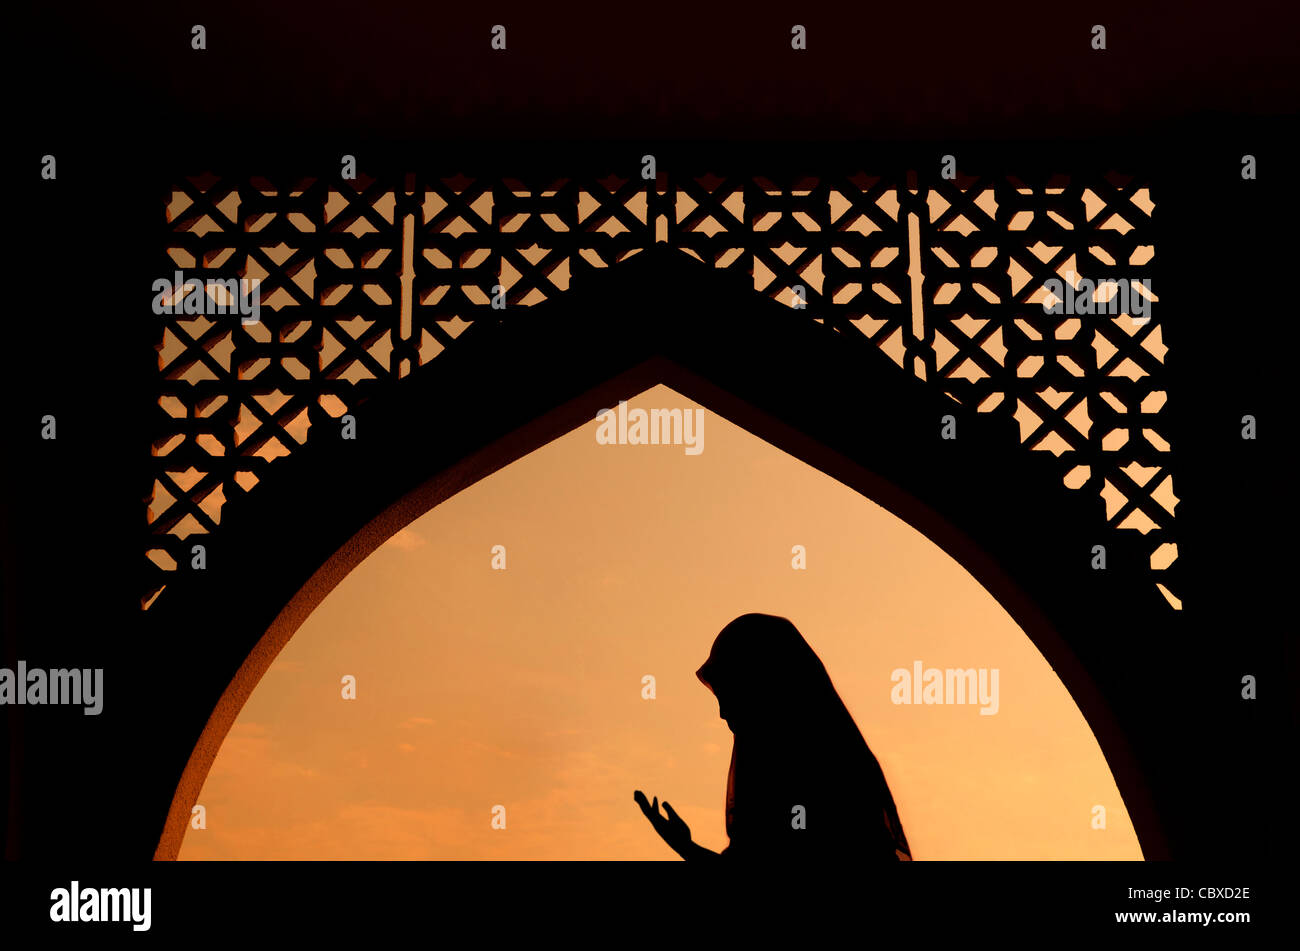 silhoutte of muslim woman praying during fasting holy month of ramadan - Stock Image